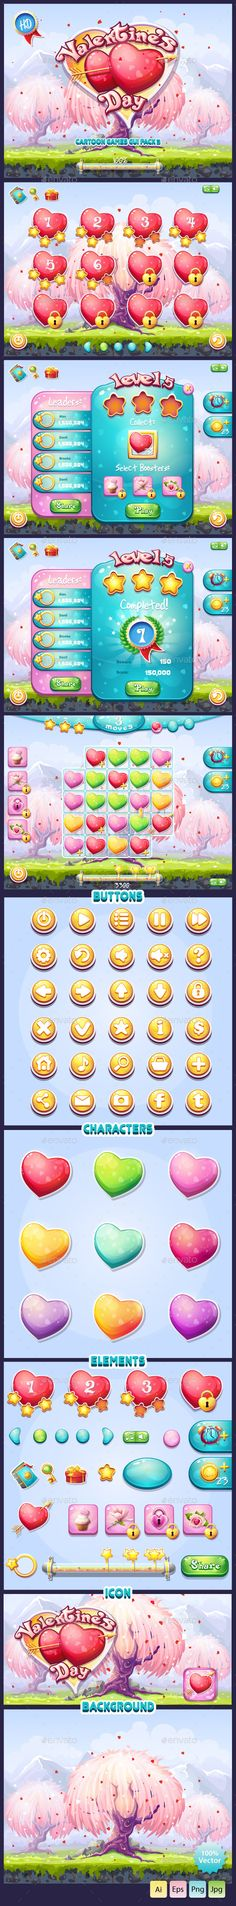 GUI Valentine's Day - User Interfaces #Game #Assets   Download http://graphicriver.net/item/gui-valentines-day/10088397?ref=sinzo